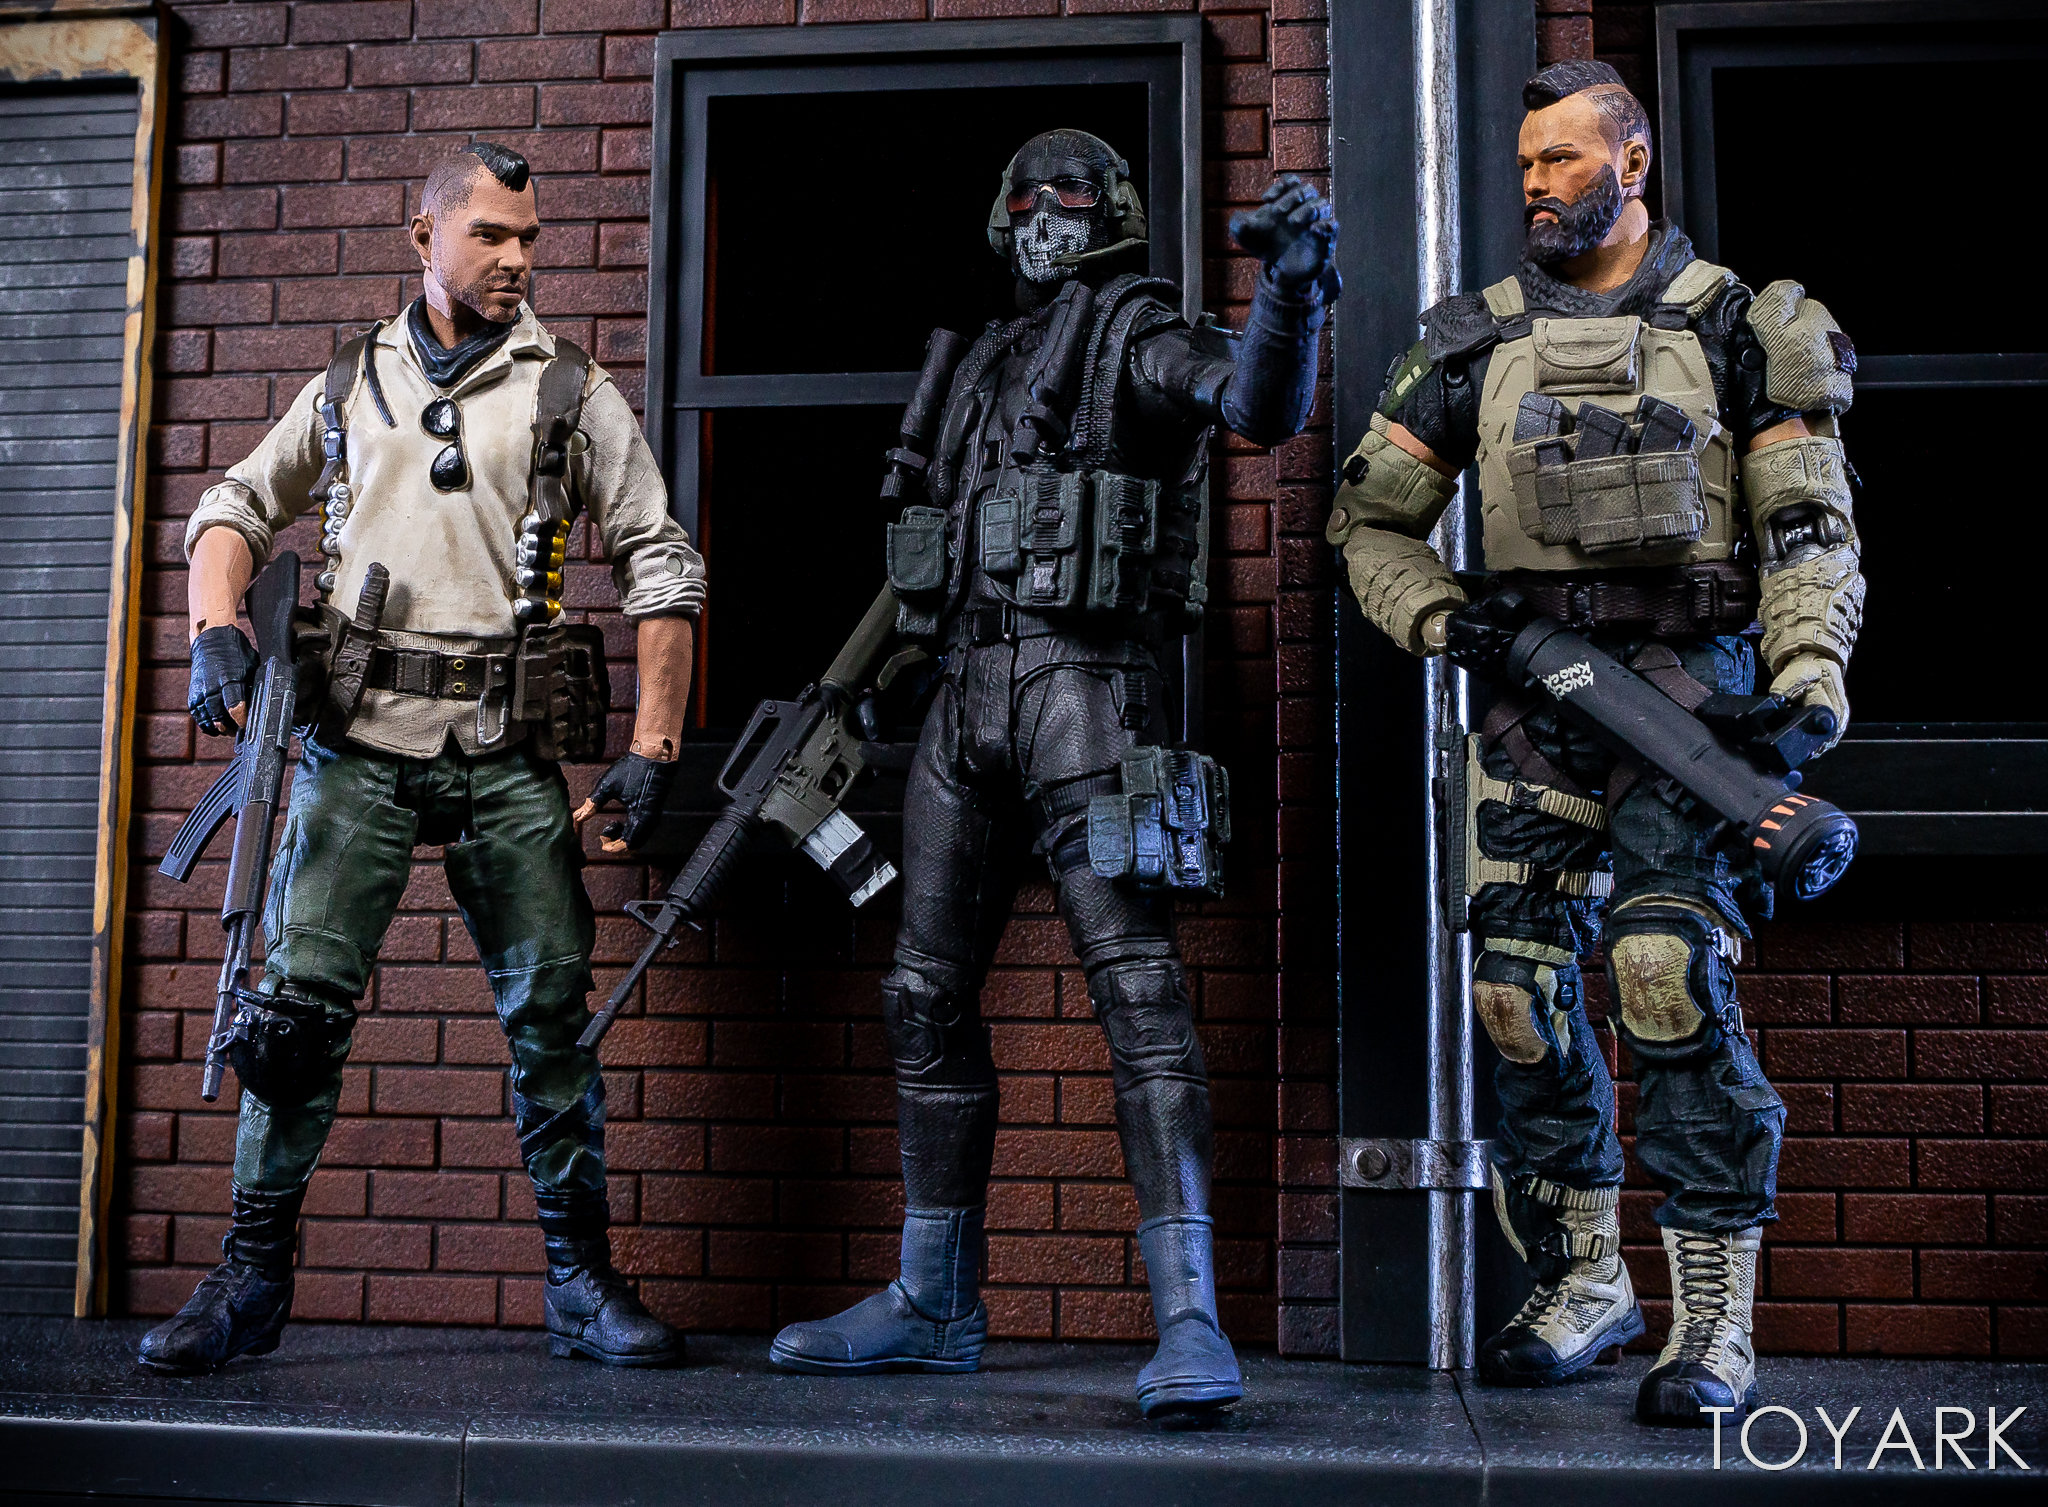 https://news.toyark.com/wp-content/uploads/sites/4/2019/01/Call-of-Duty-Wave-1-McFarlane-020.jpg